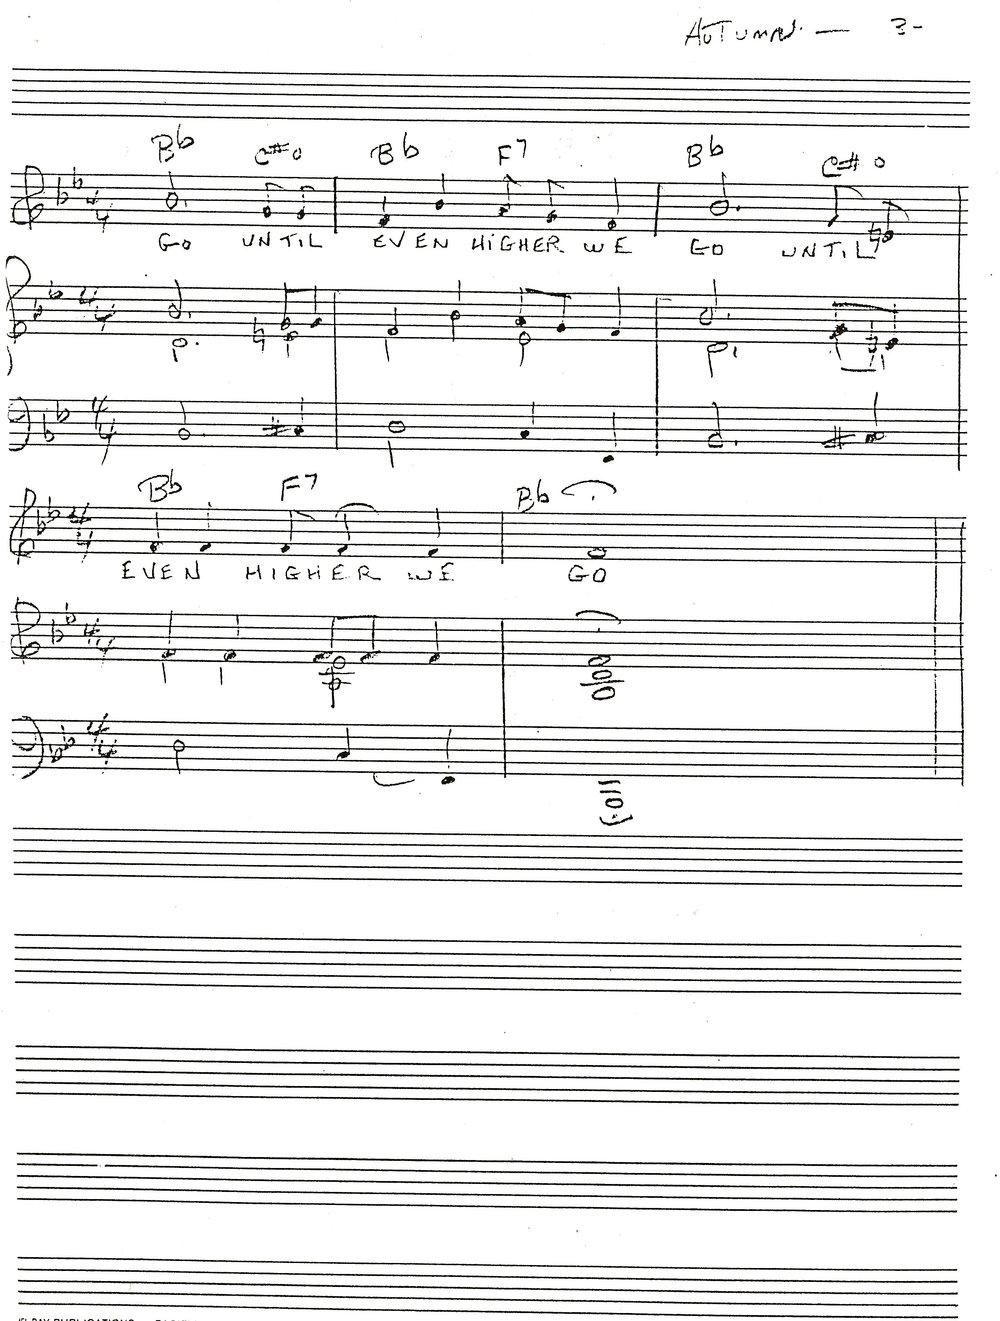 song page 3.jpg